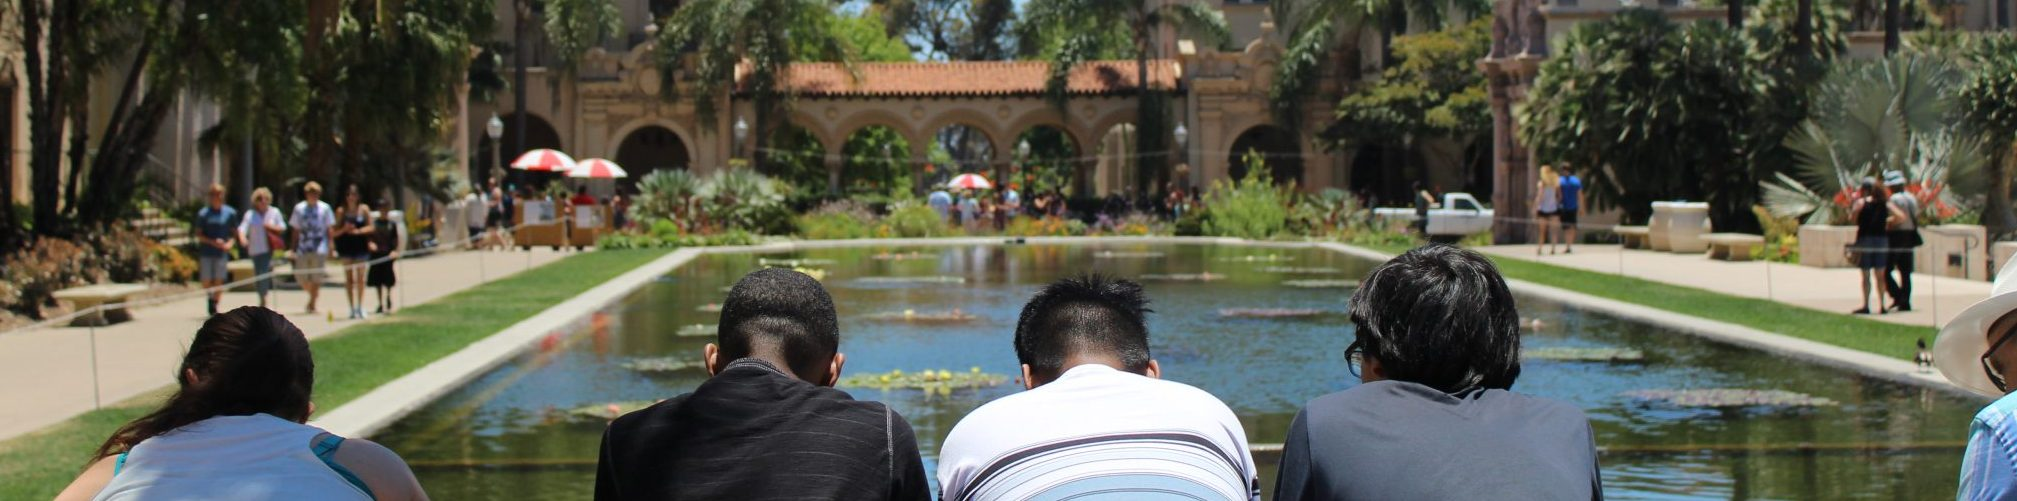 Family looking out over the serene waters of Balboa Park's Lily Pond.